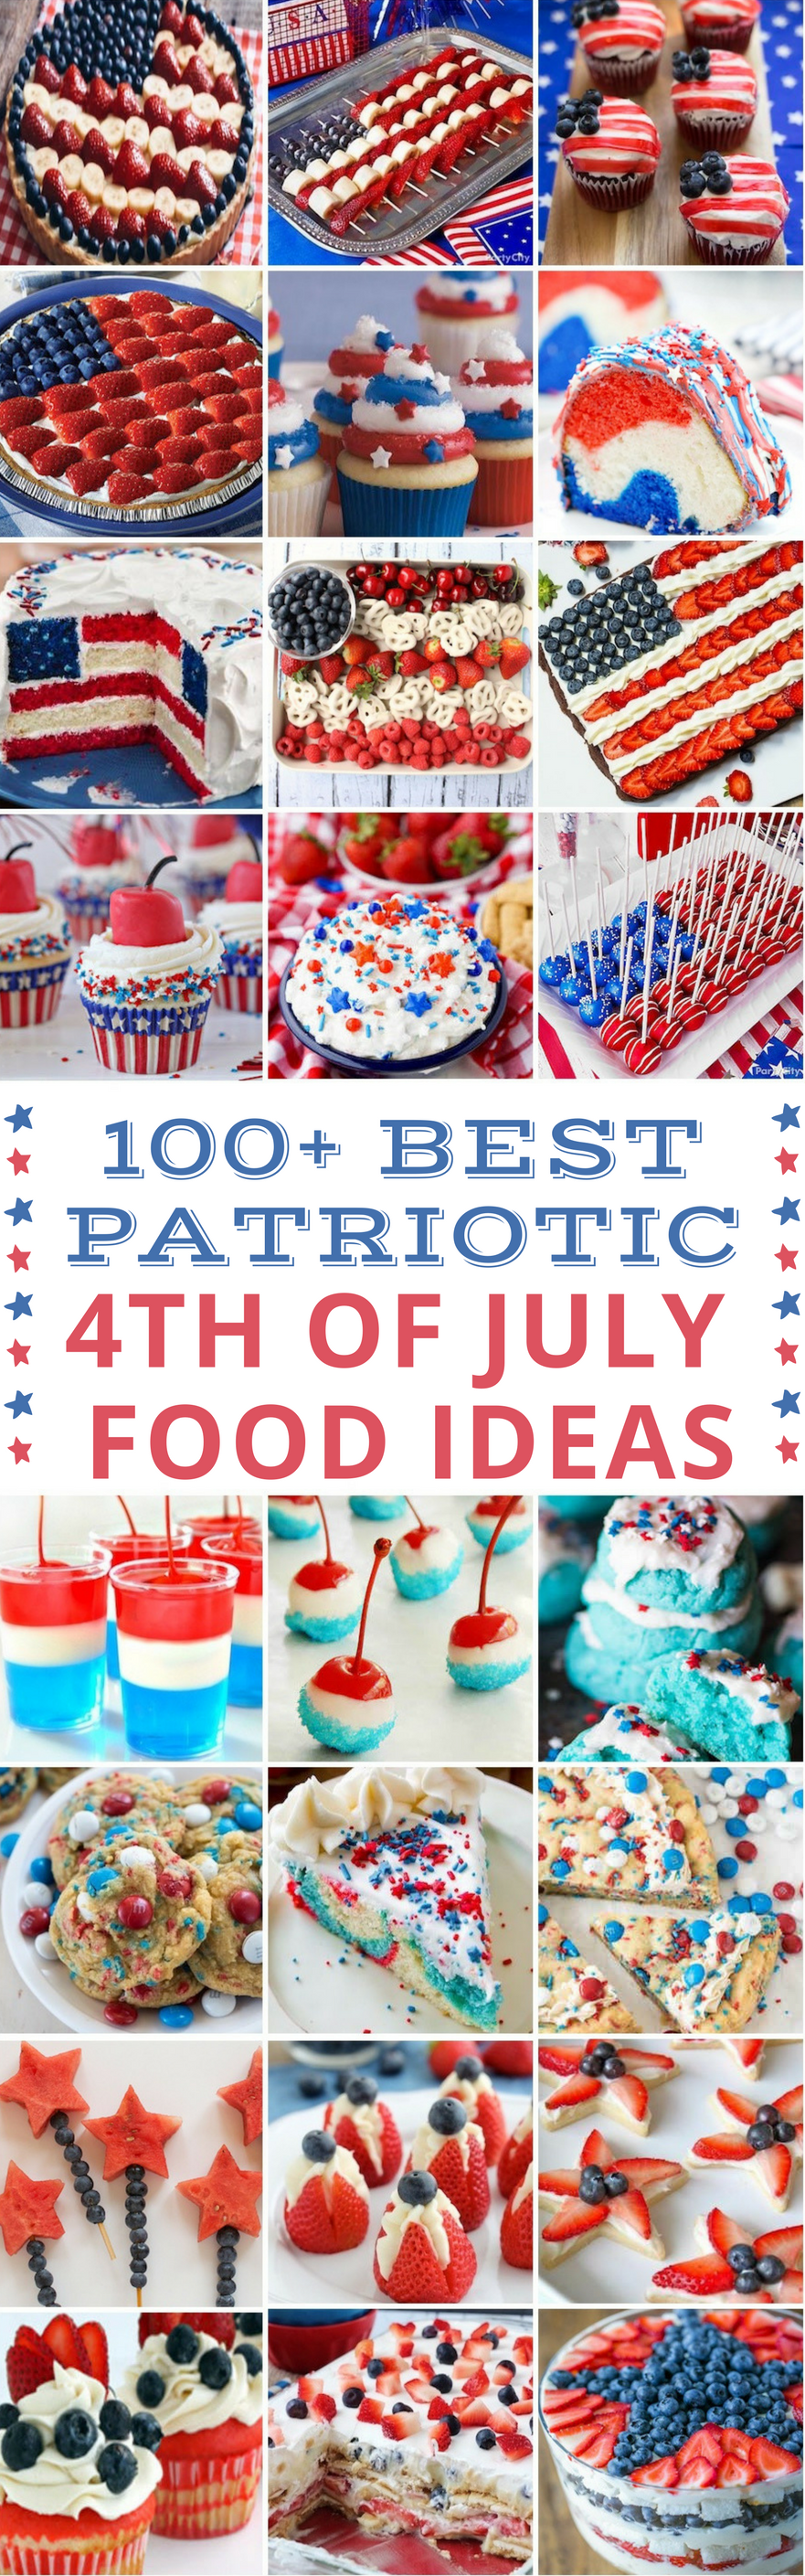 100 best patriotic 4th of july food ideas prudent penny for July 4th food ideas